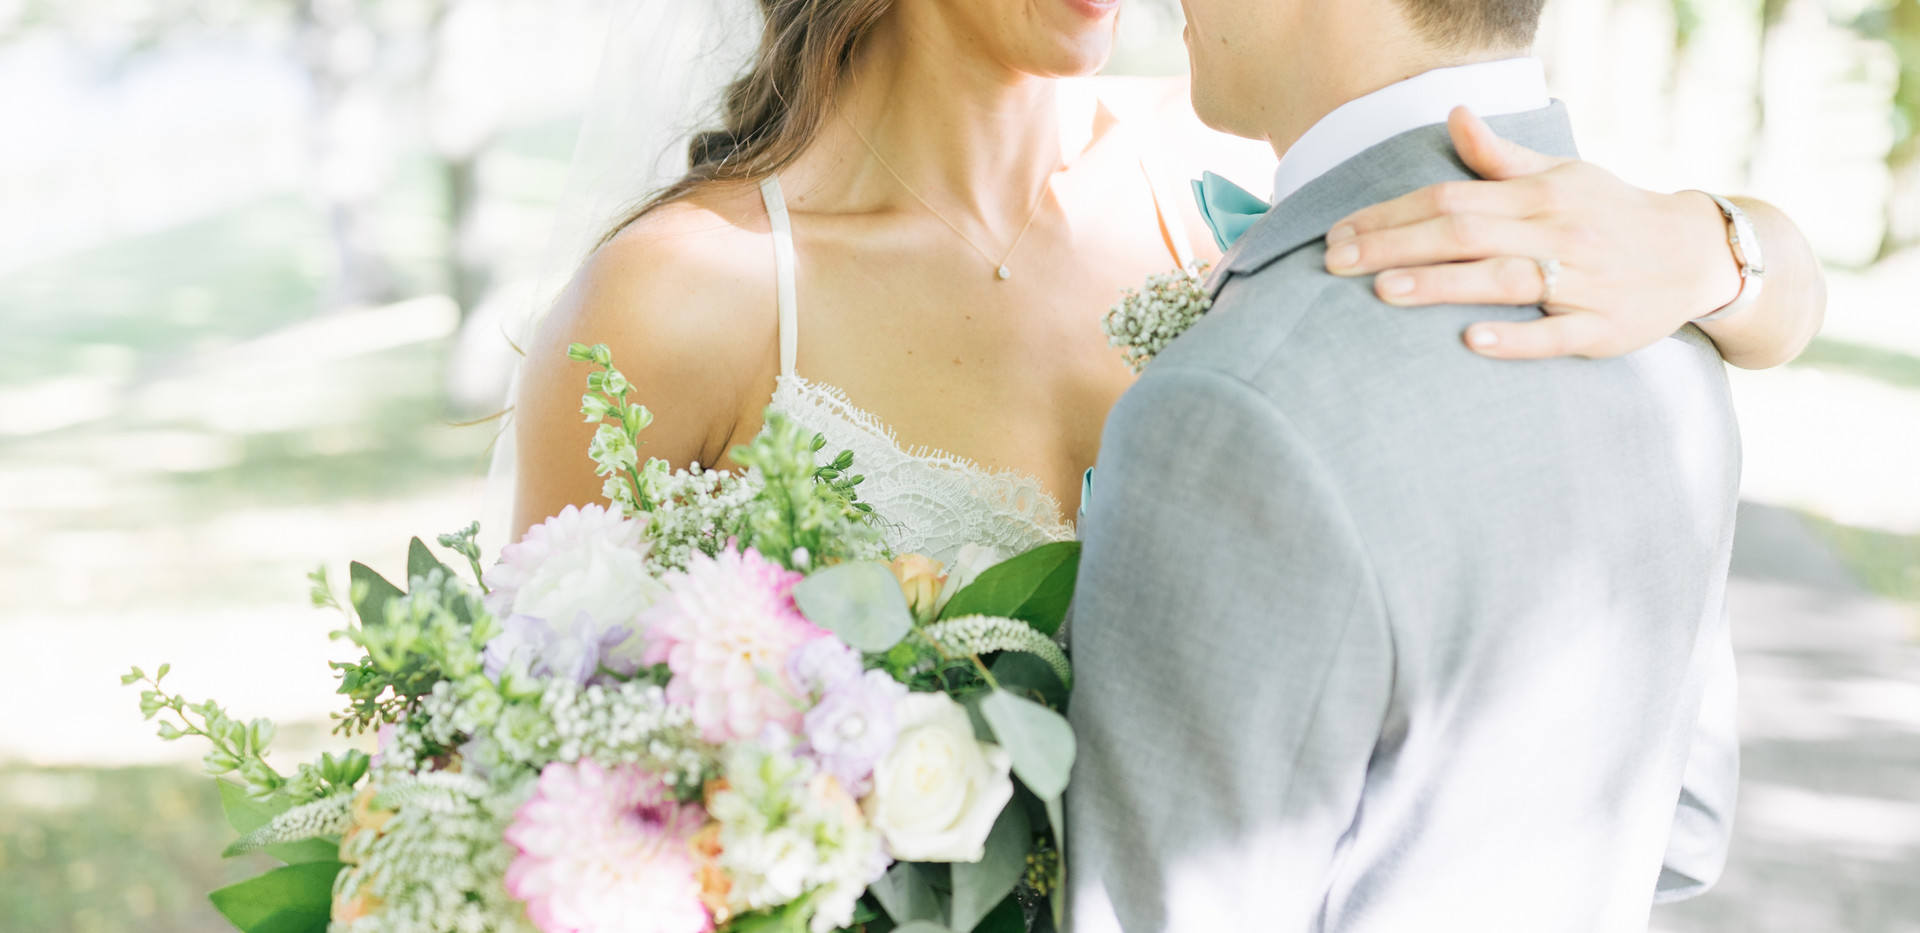 bride and groom smiling at eachother with pastel bouquet held in front